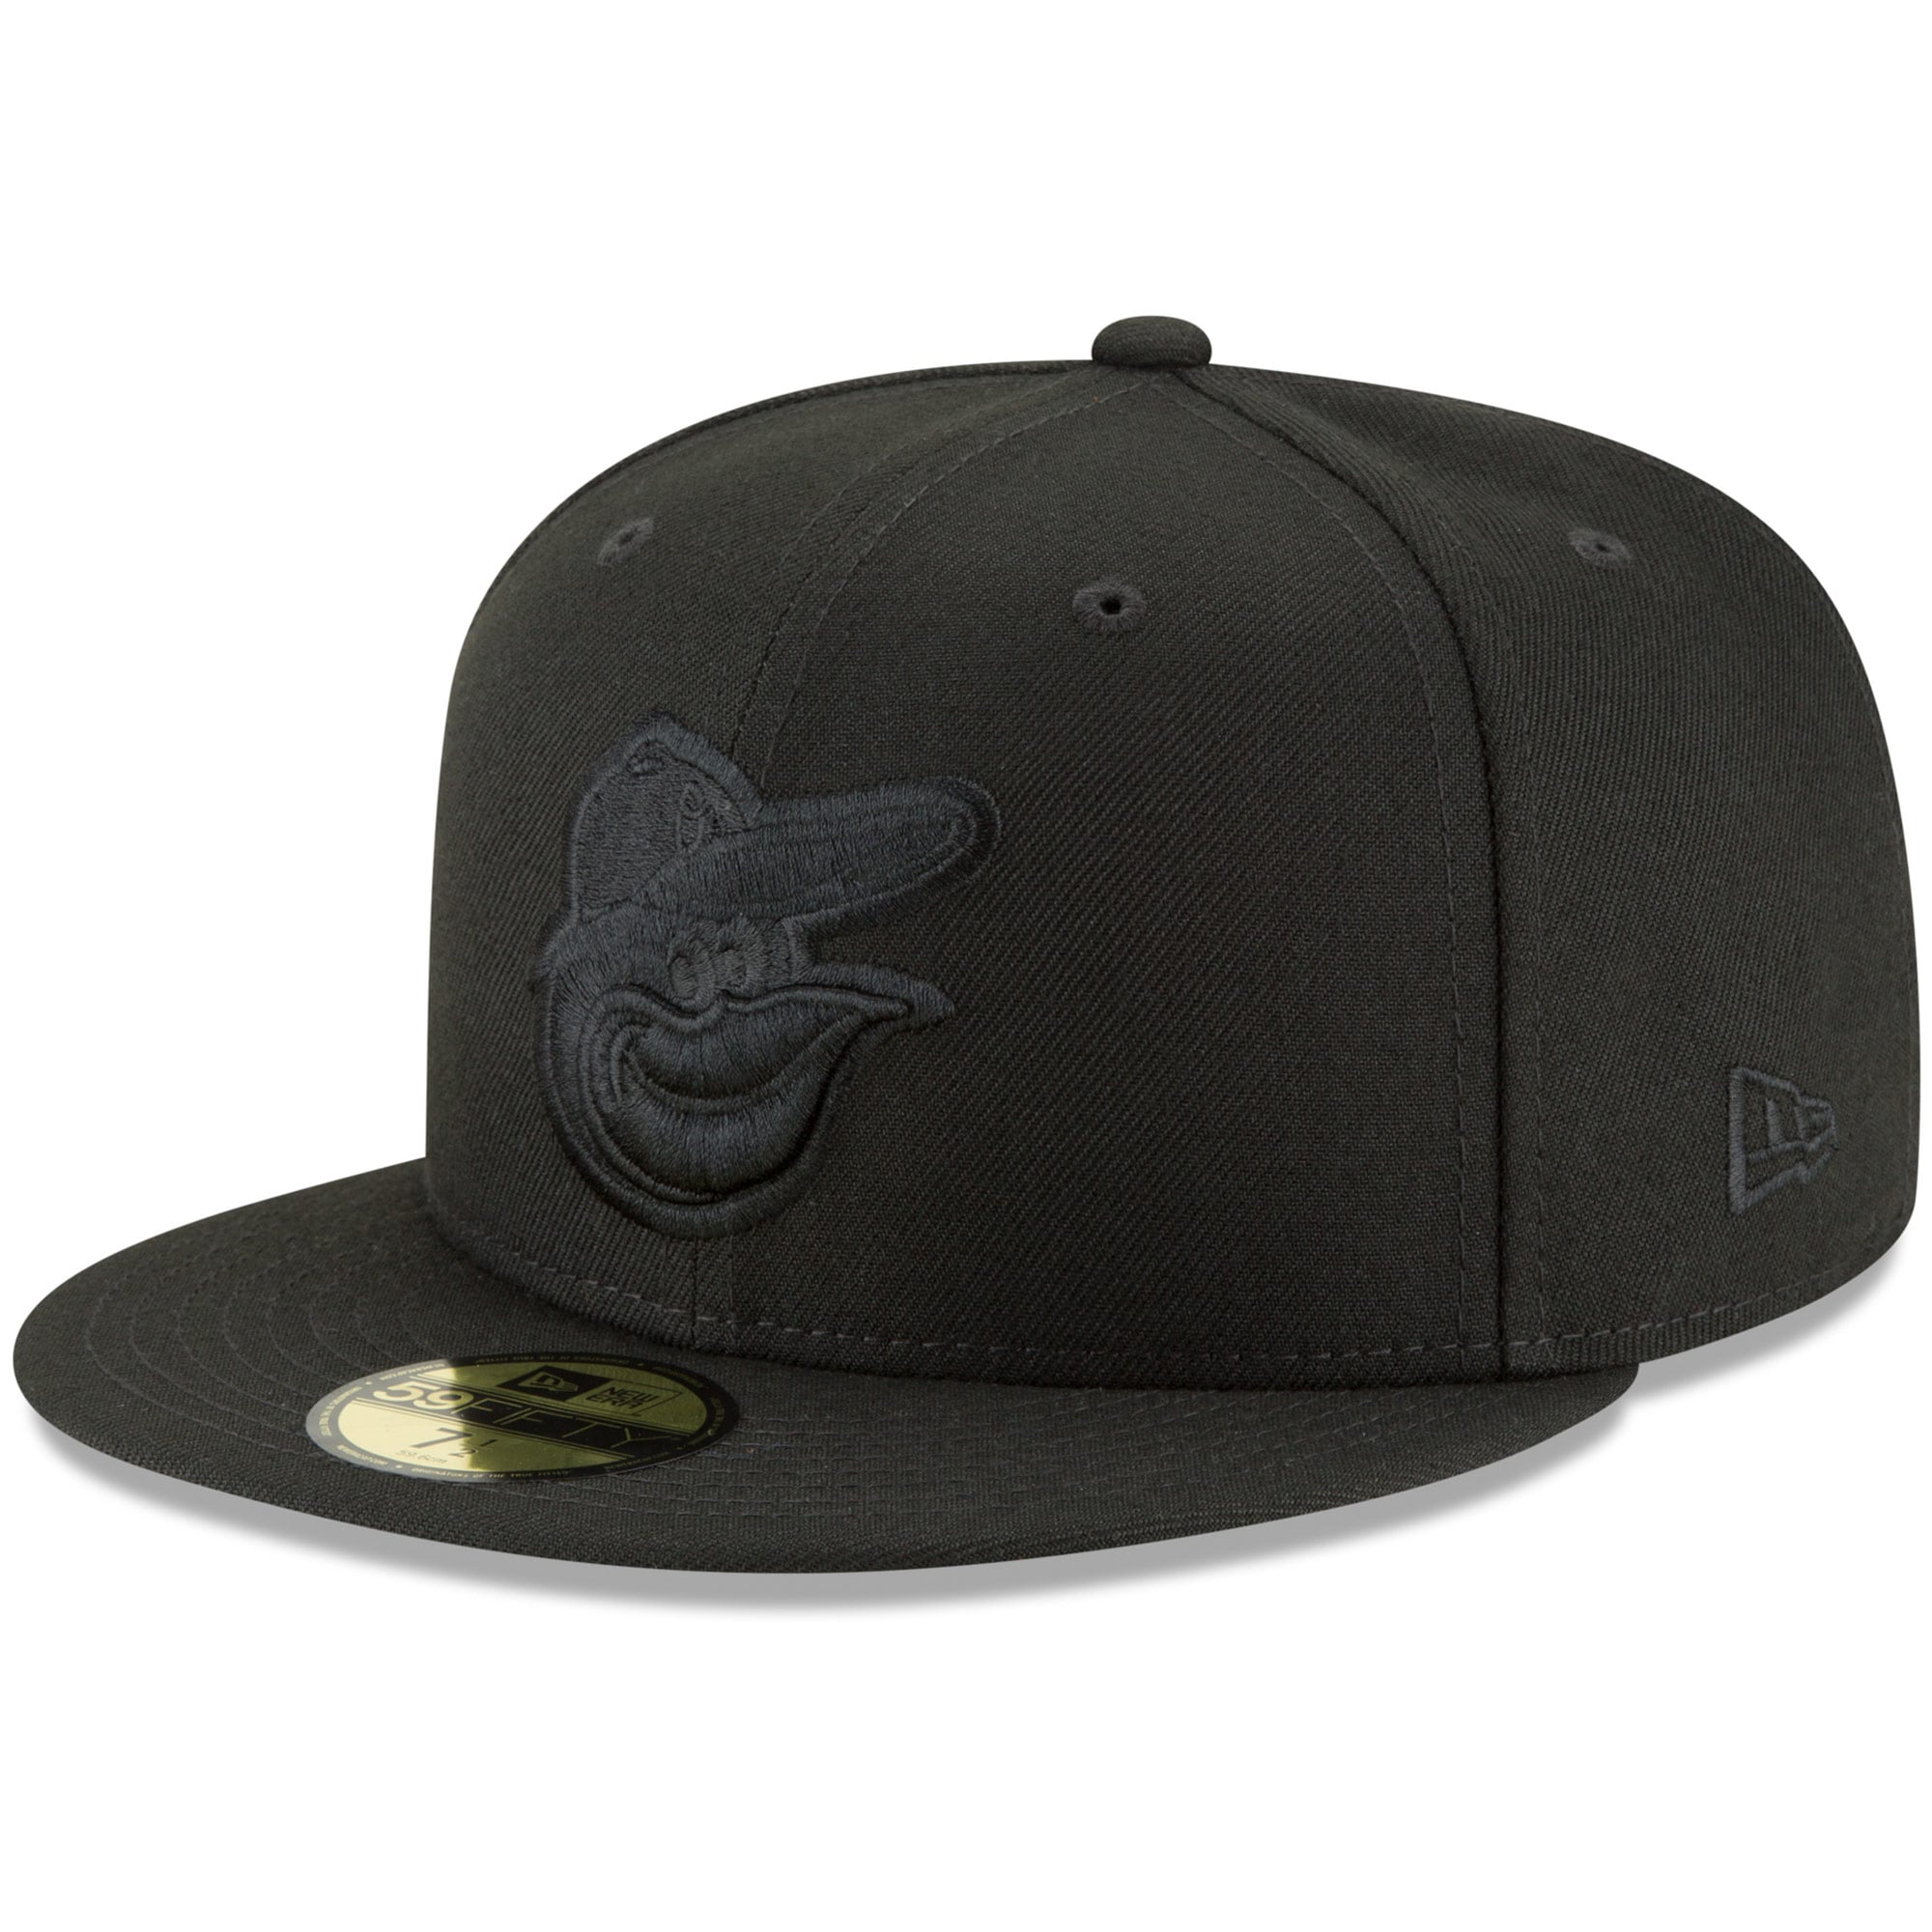 Baltimore Orioles New Era Primary Logo Basic 59FIFTY Fitted Hat - Black